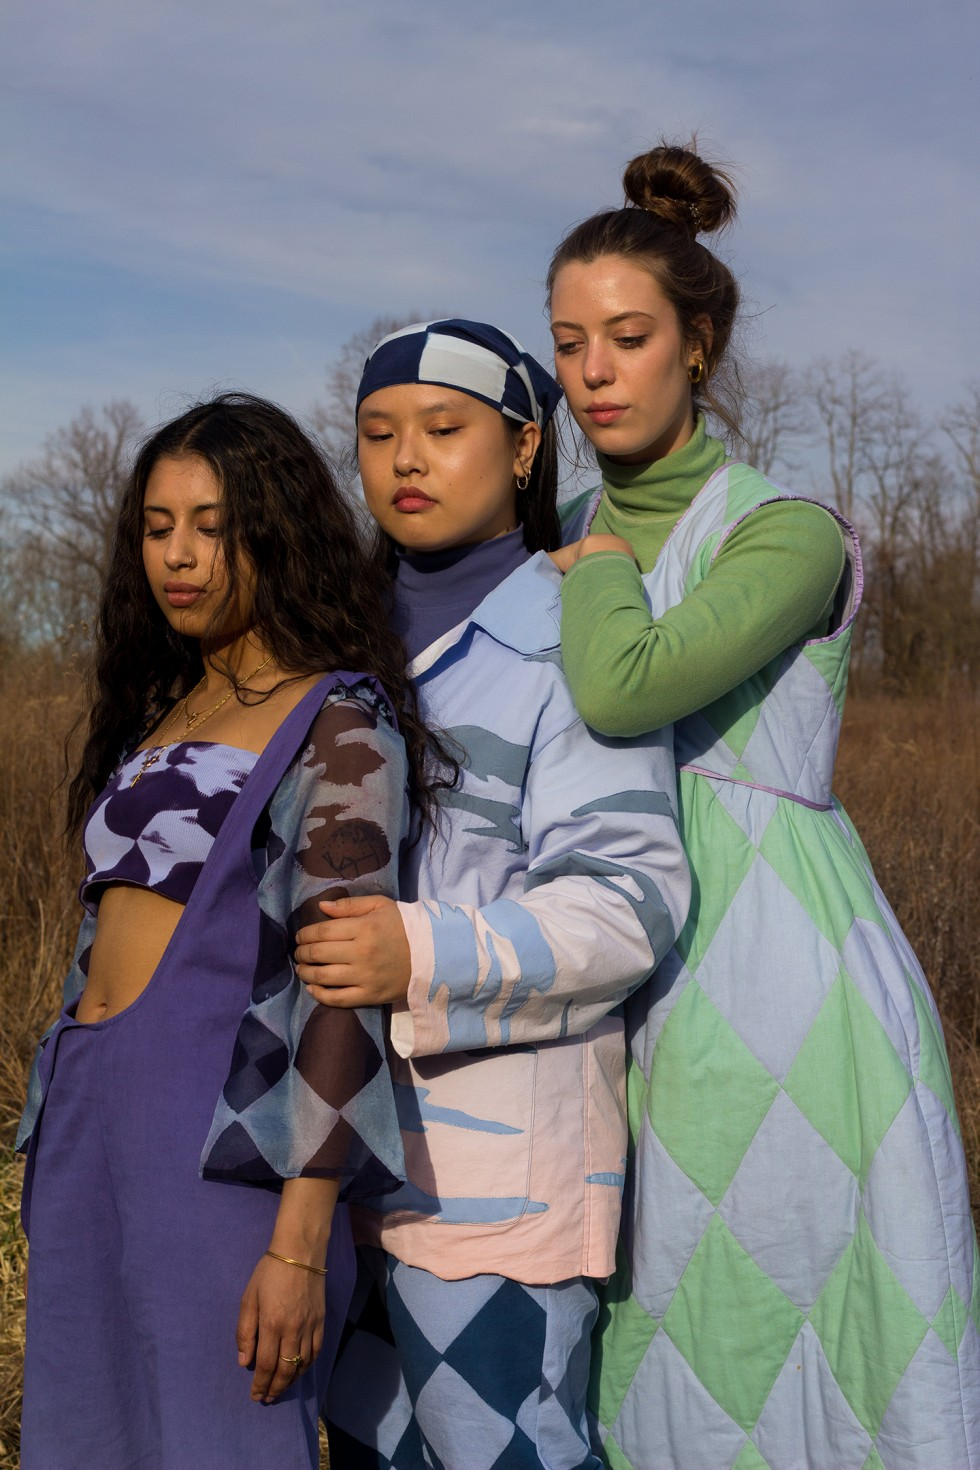 Models standing around lounging in a sunny field wearing flowing, patterned garments